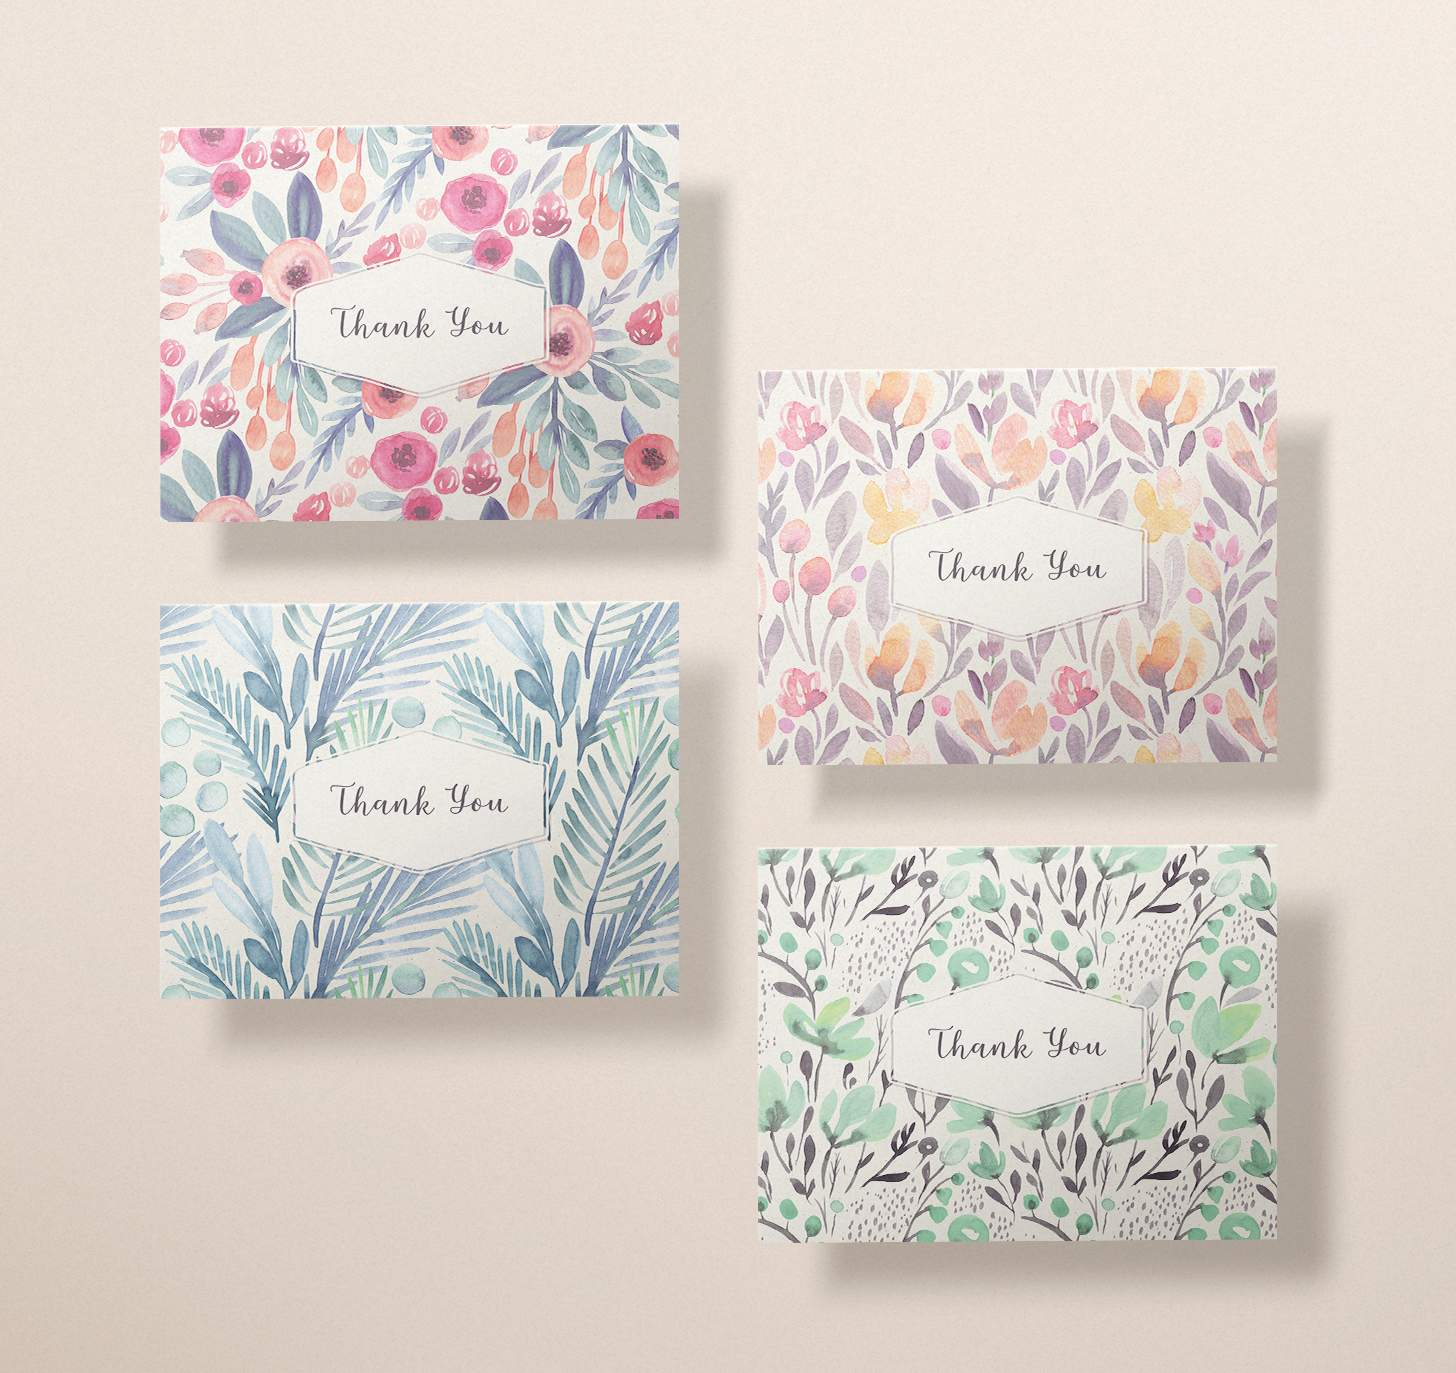 Four assorted cards with blue, green, pink, and rose color designs